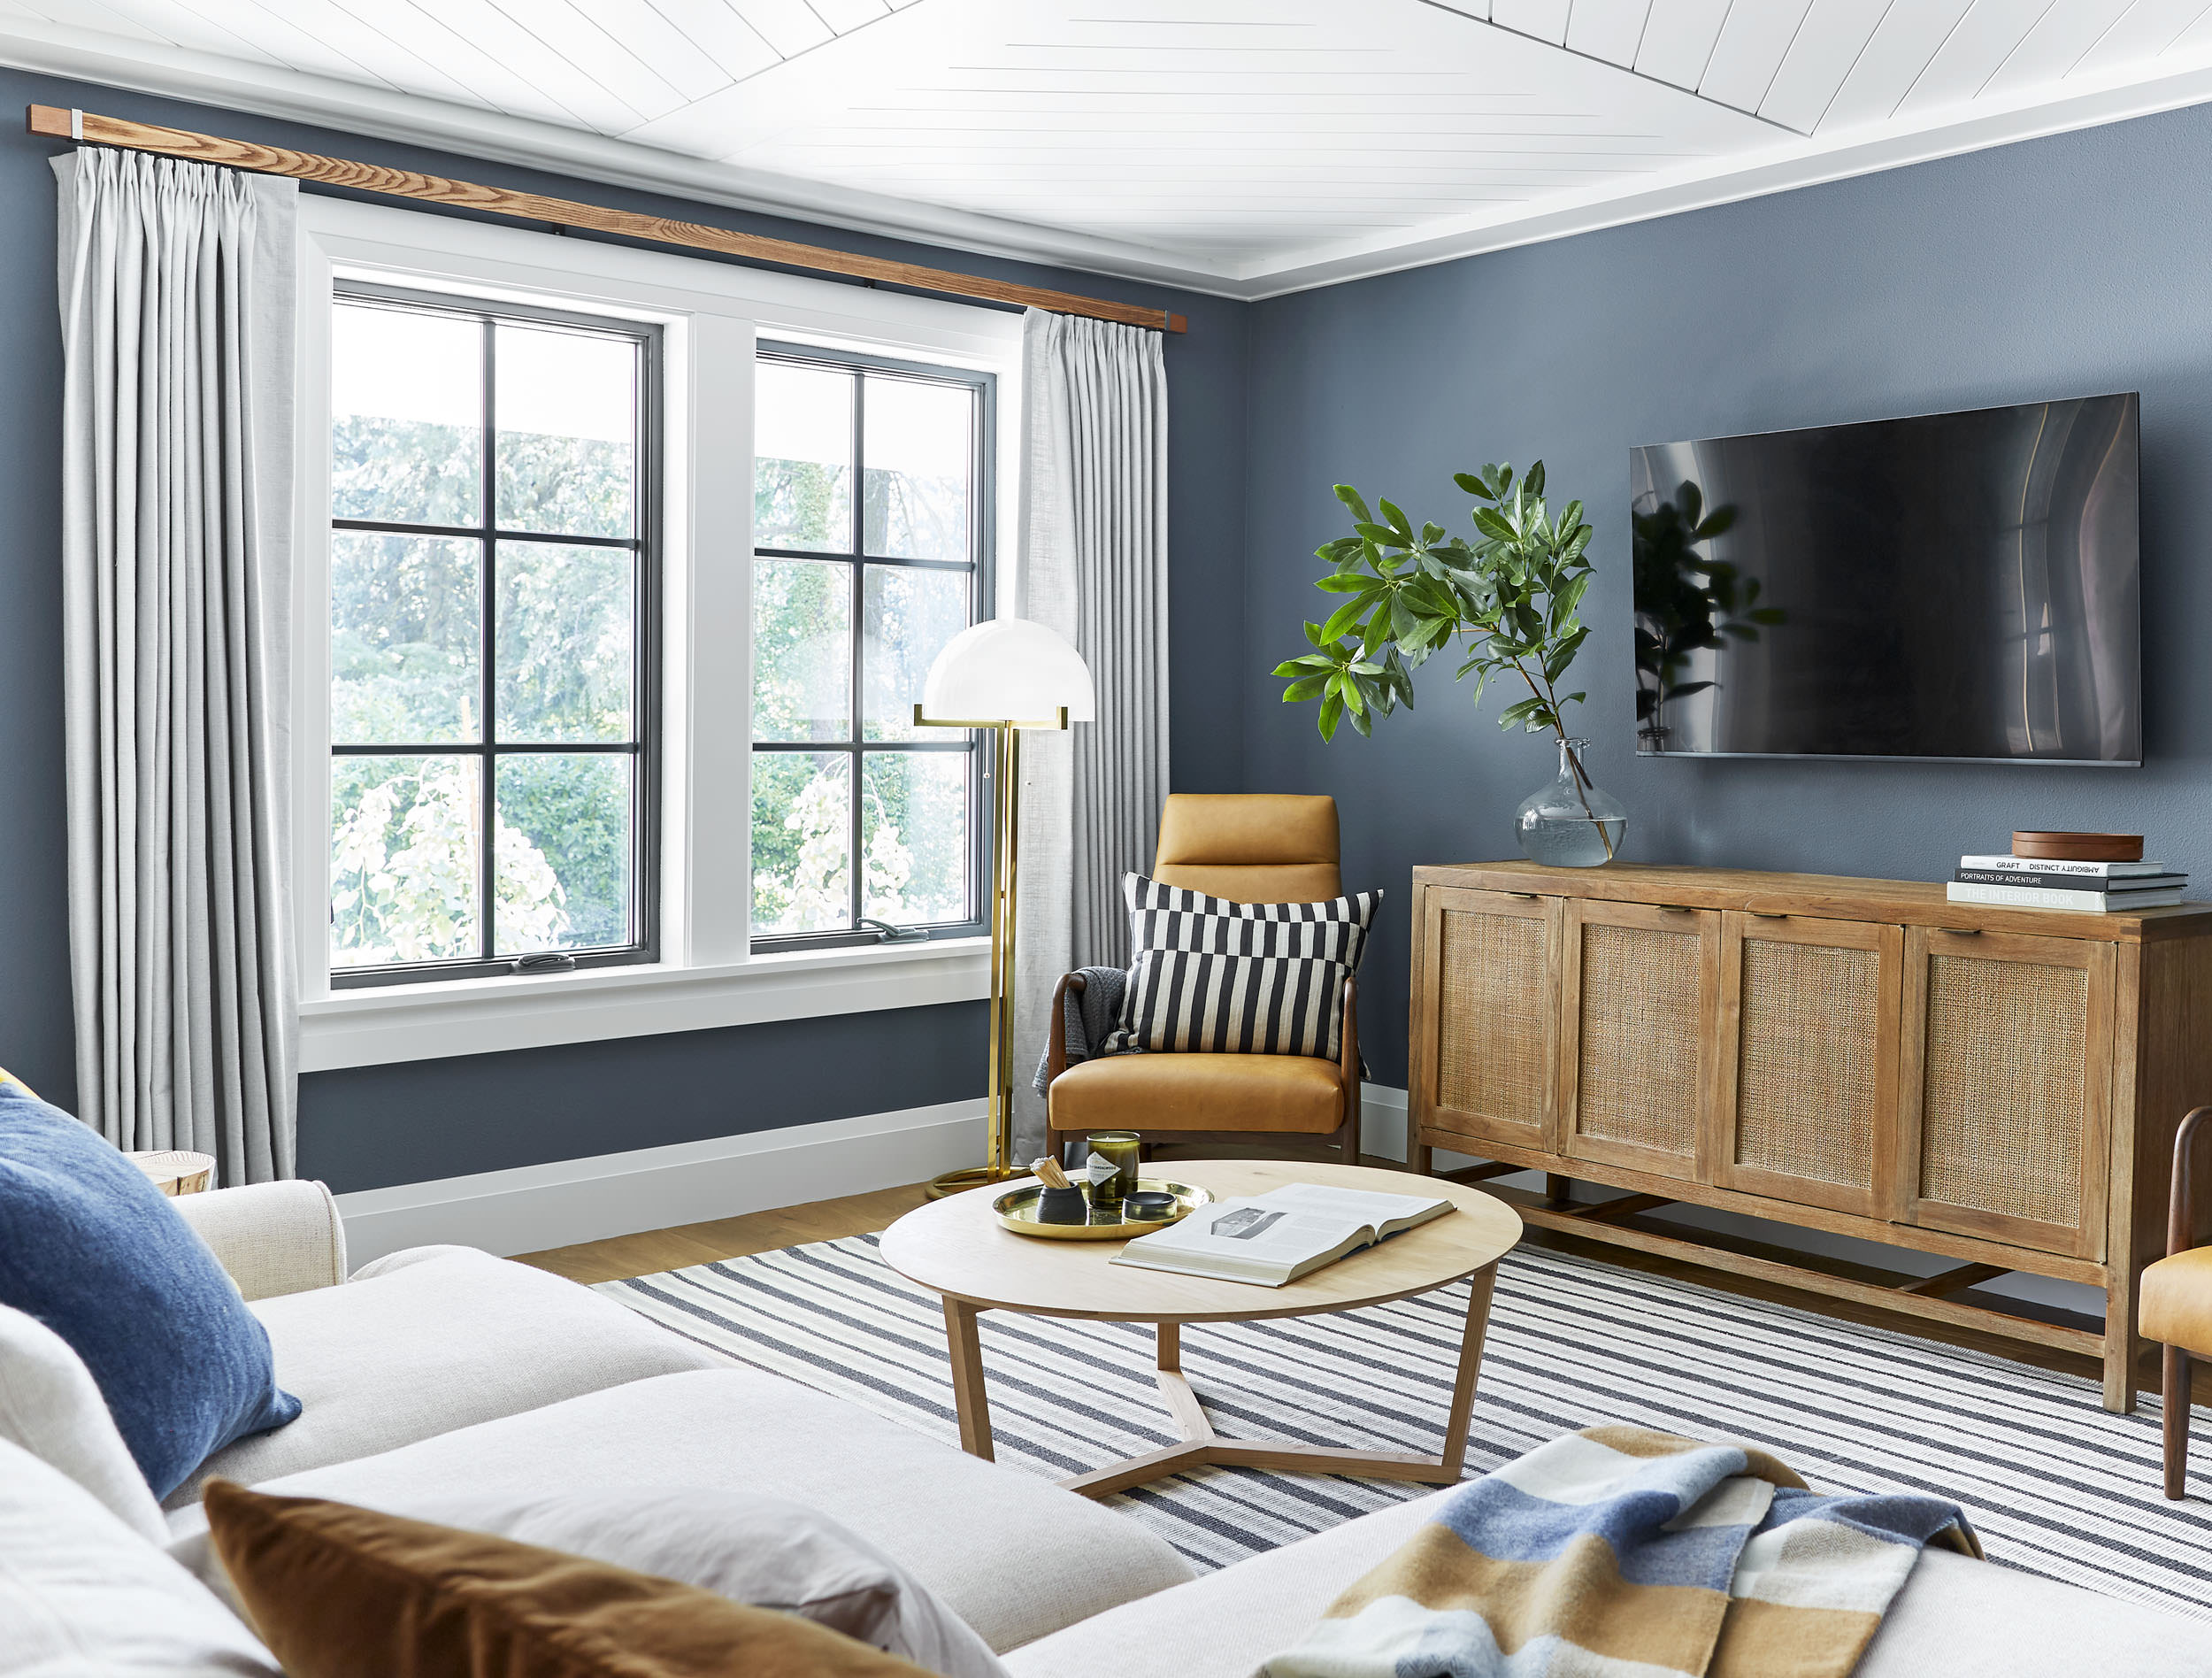 best sherwin williams blue paint colors of 2020 on paint colors by sherwin williams id=47115